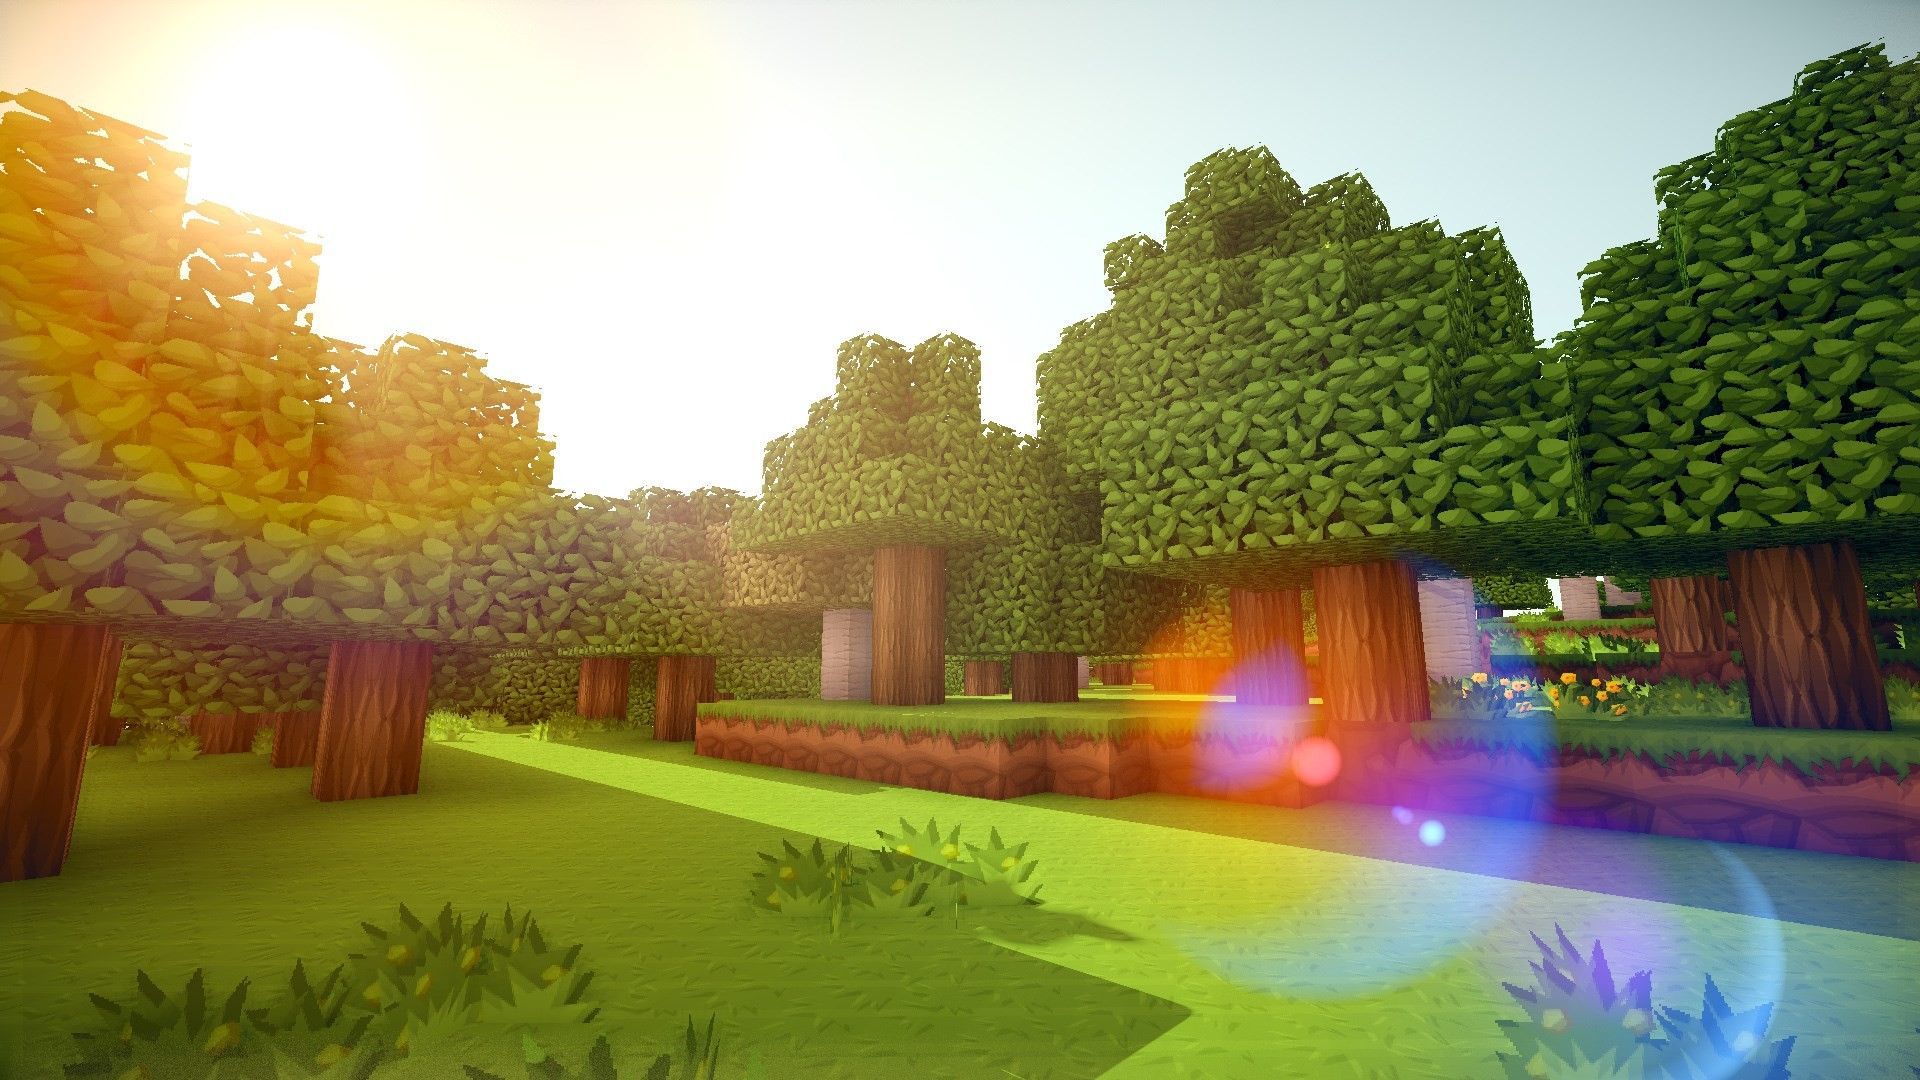 1920x1080 ... minecraft images for desktop background  207 kB by.